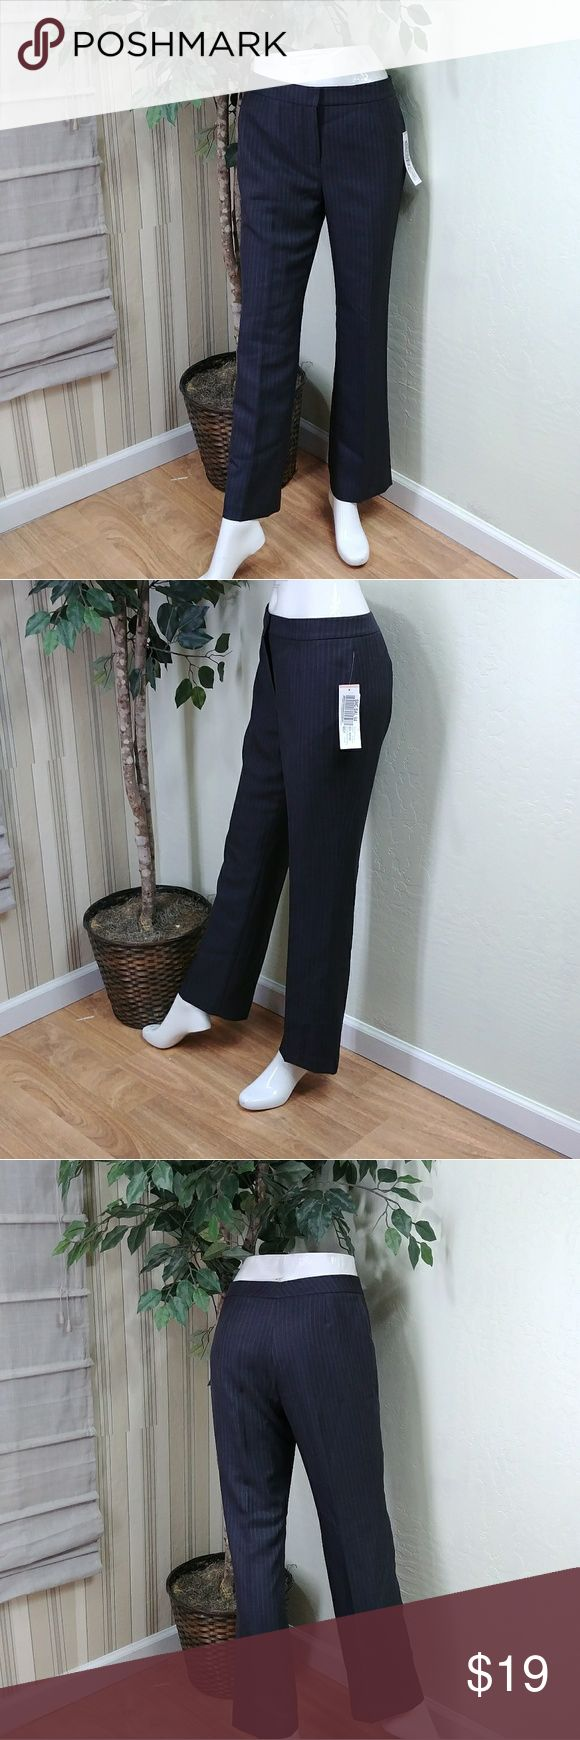 """Le suit striped petite dress pants Le Suit Women Petite Dress Pants, size 4-petite, full lining, color charcoal, straight leg, button and zipper closure, measures 14.5 waist, 10"""" front rise, 28.5 inseam, 18.5 hips with 8"""" leg opening, made of polyester blend, comes new as closeout/salvage item since is missing the top great cosmetic condition. Le Suit Pants Straight Leg"""